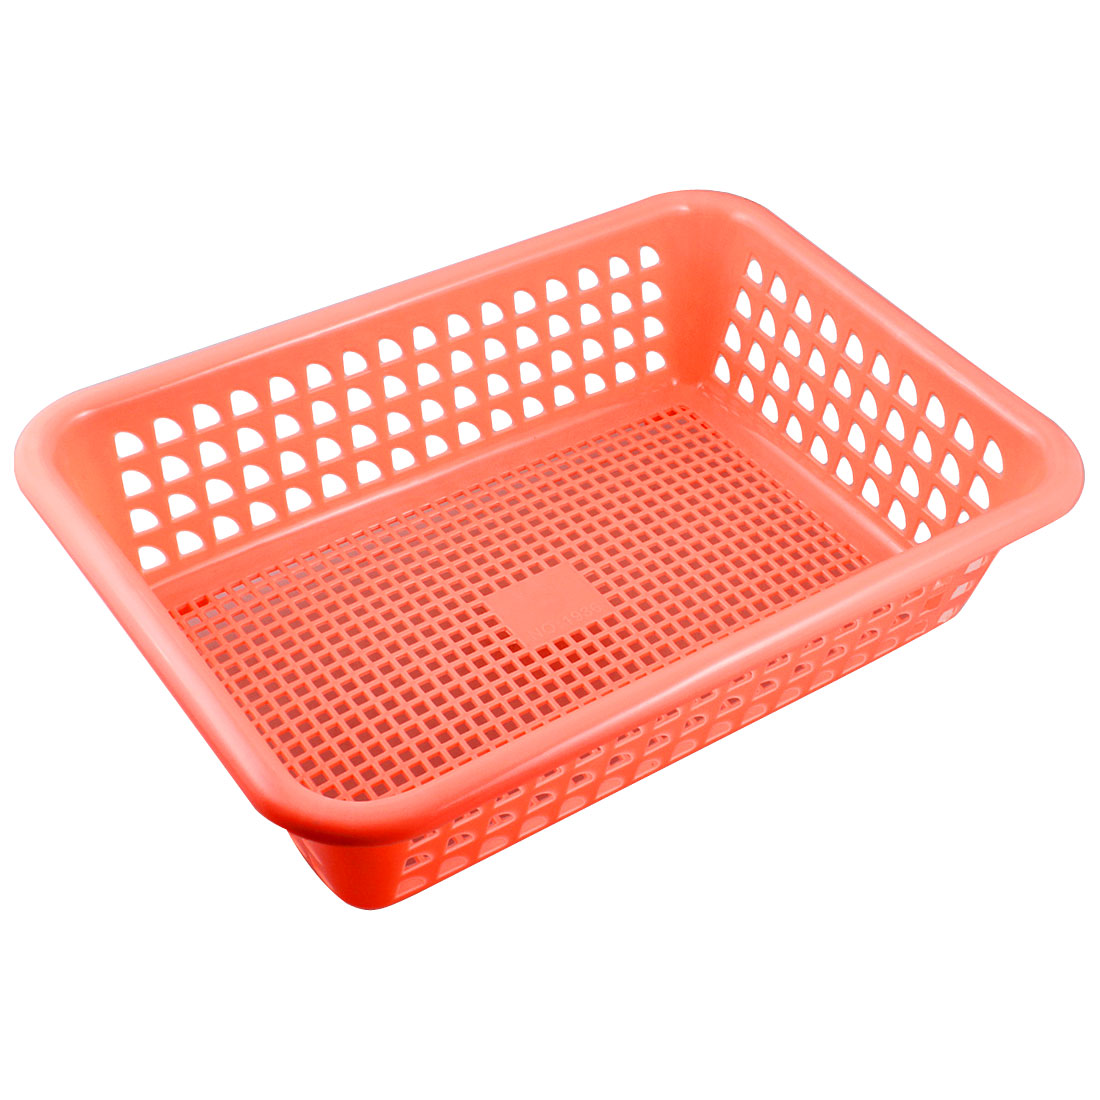 Home Kitchen Salmon Pink Plastic Perforated Gridded Fruit Basket 31cm x 22cm